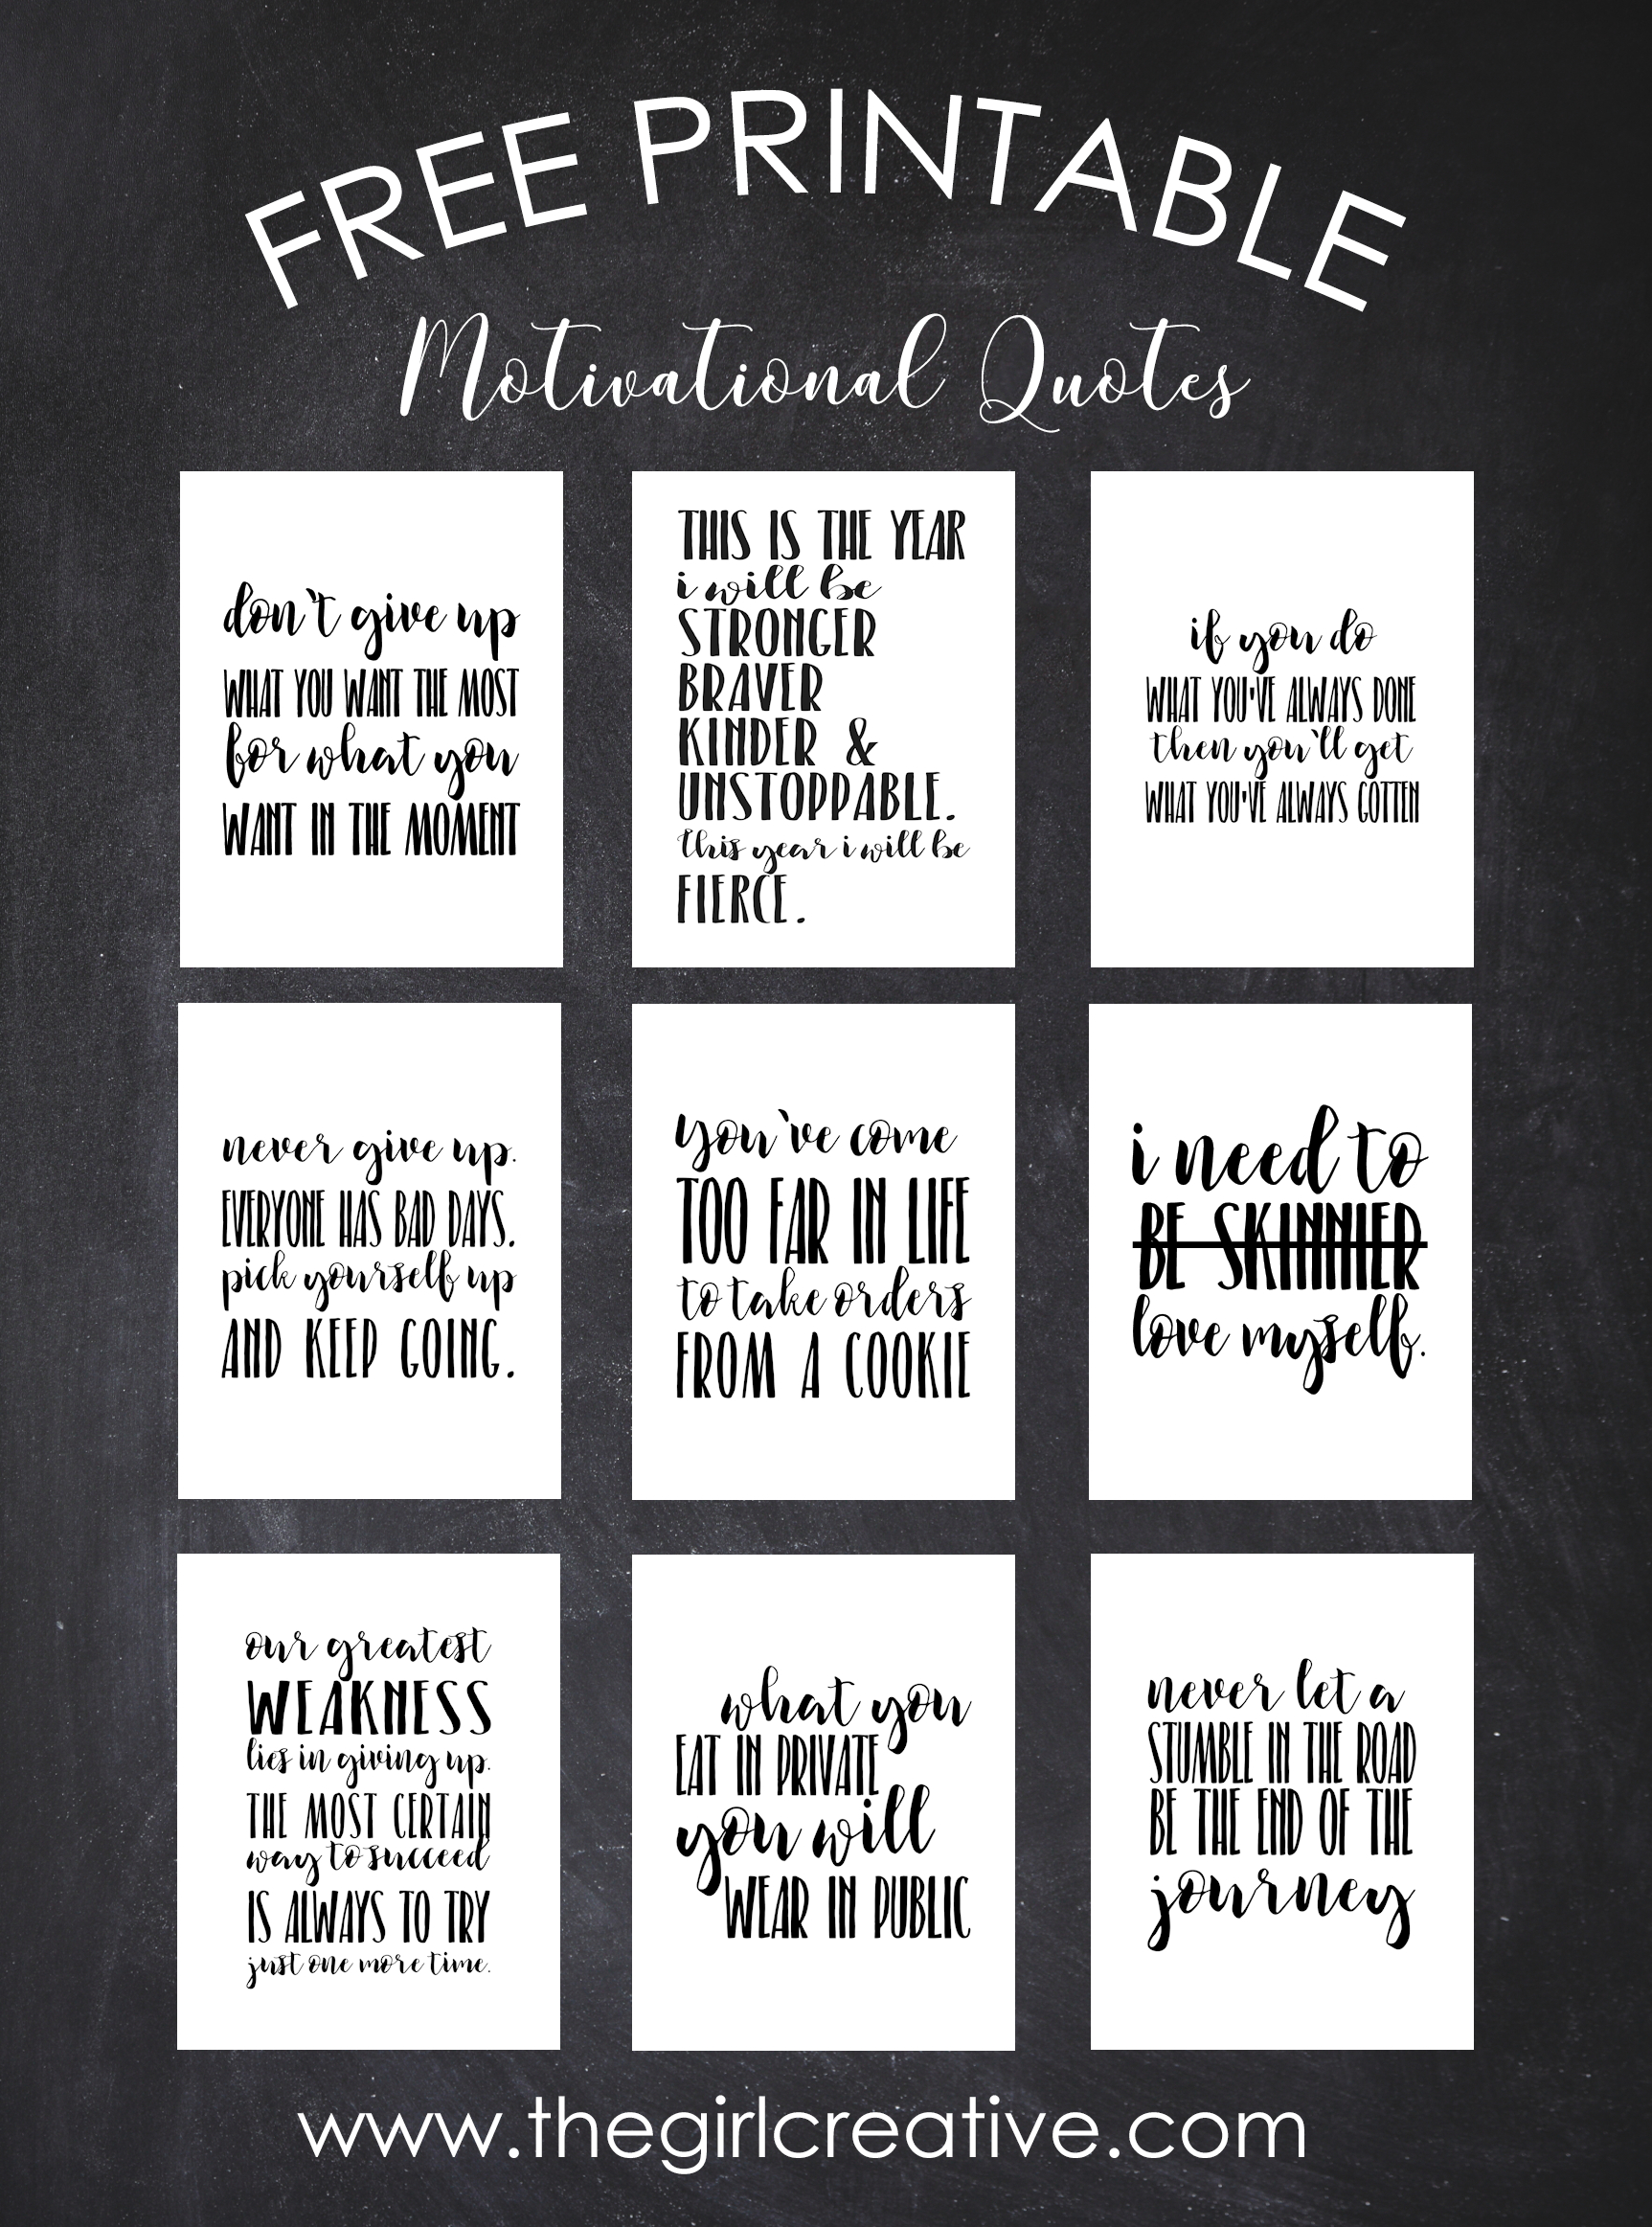 Free Printable Motivational Quotes - The Girl Creative - Free Printable Quotes